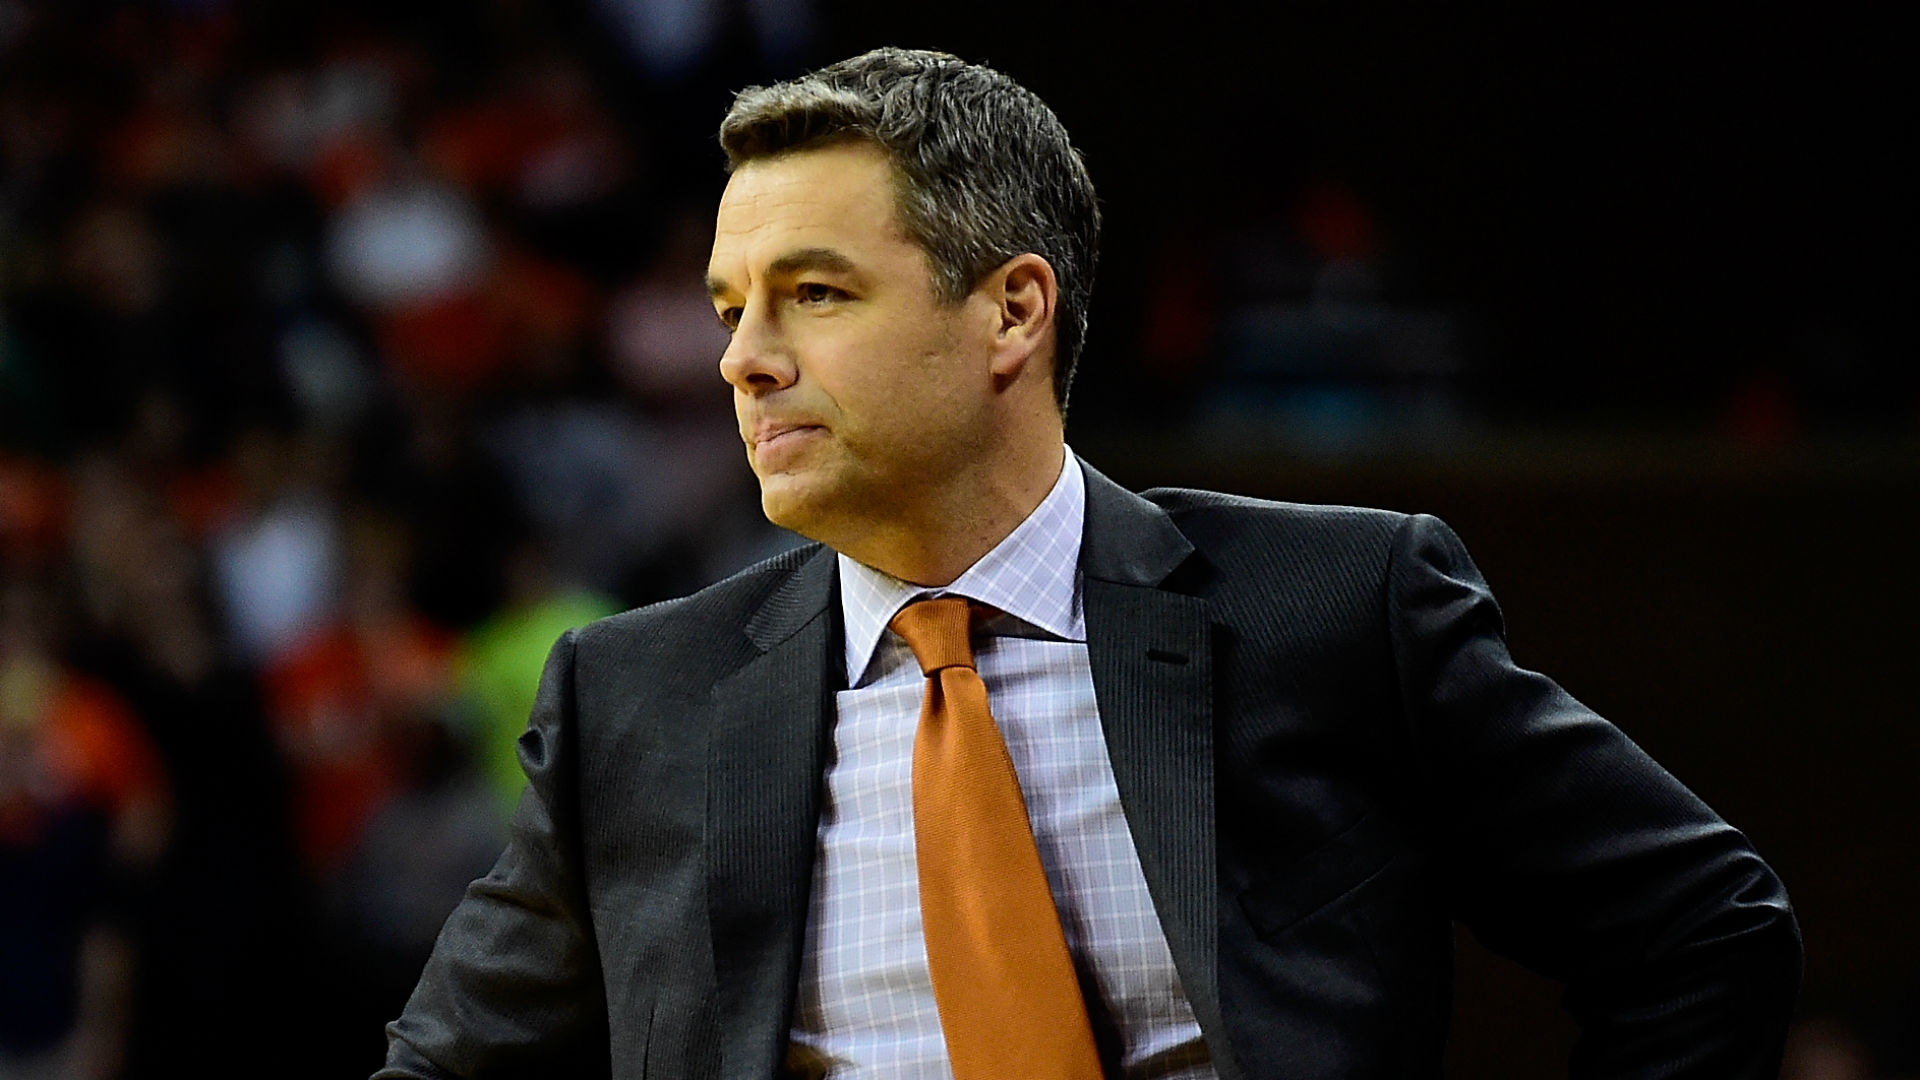 Virginia works to Wisconsin proof Tony Bennetts contract with 1920x1080